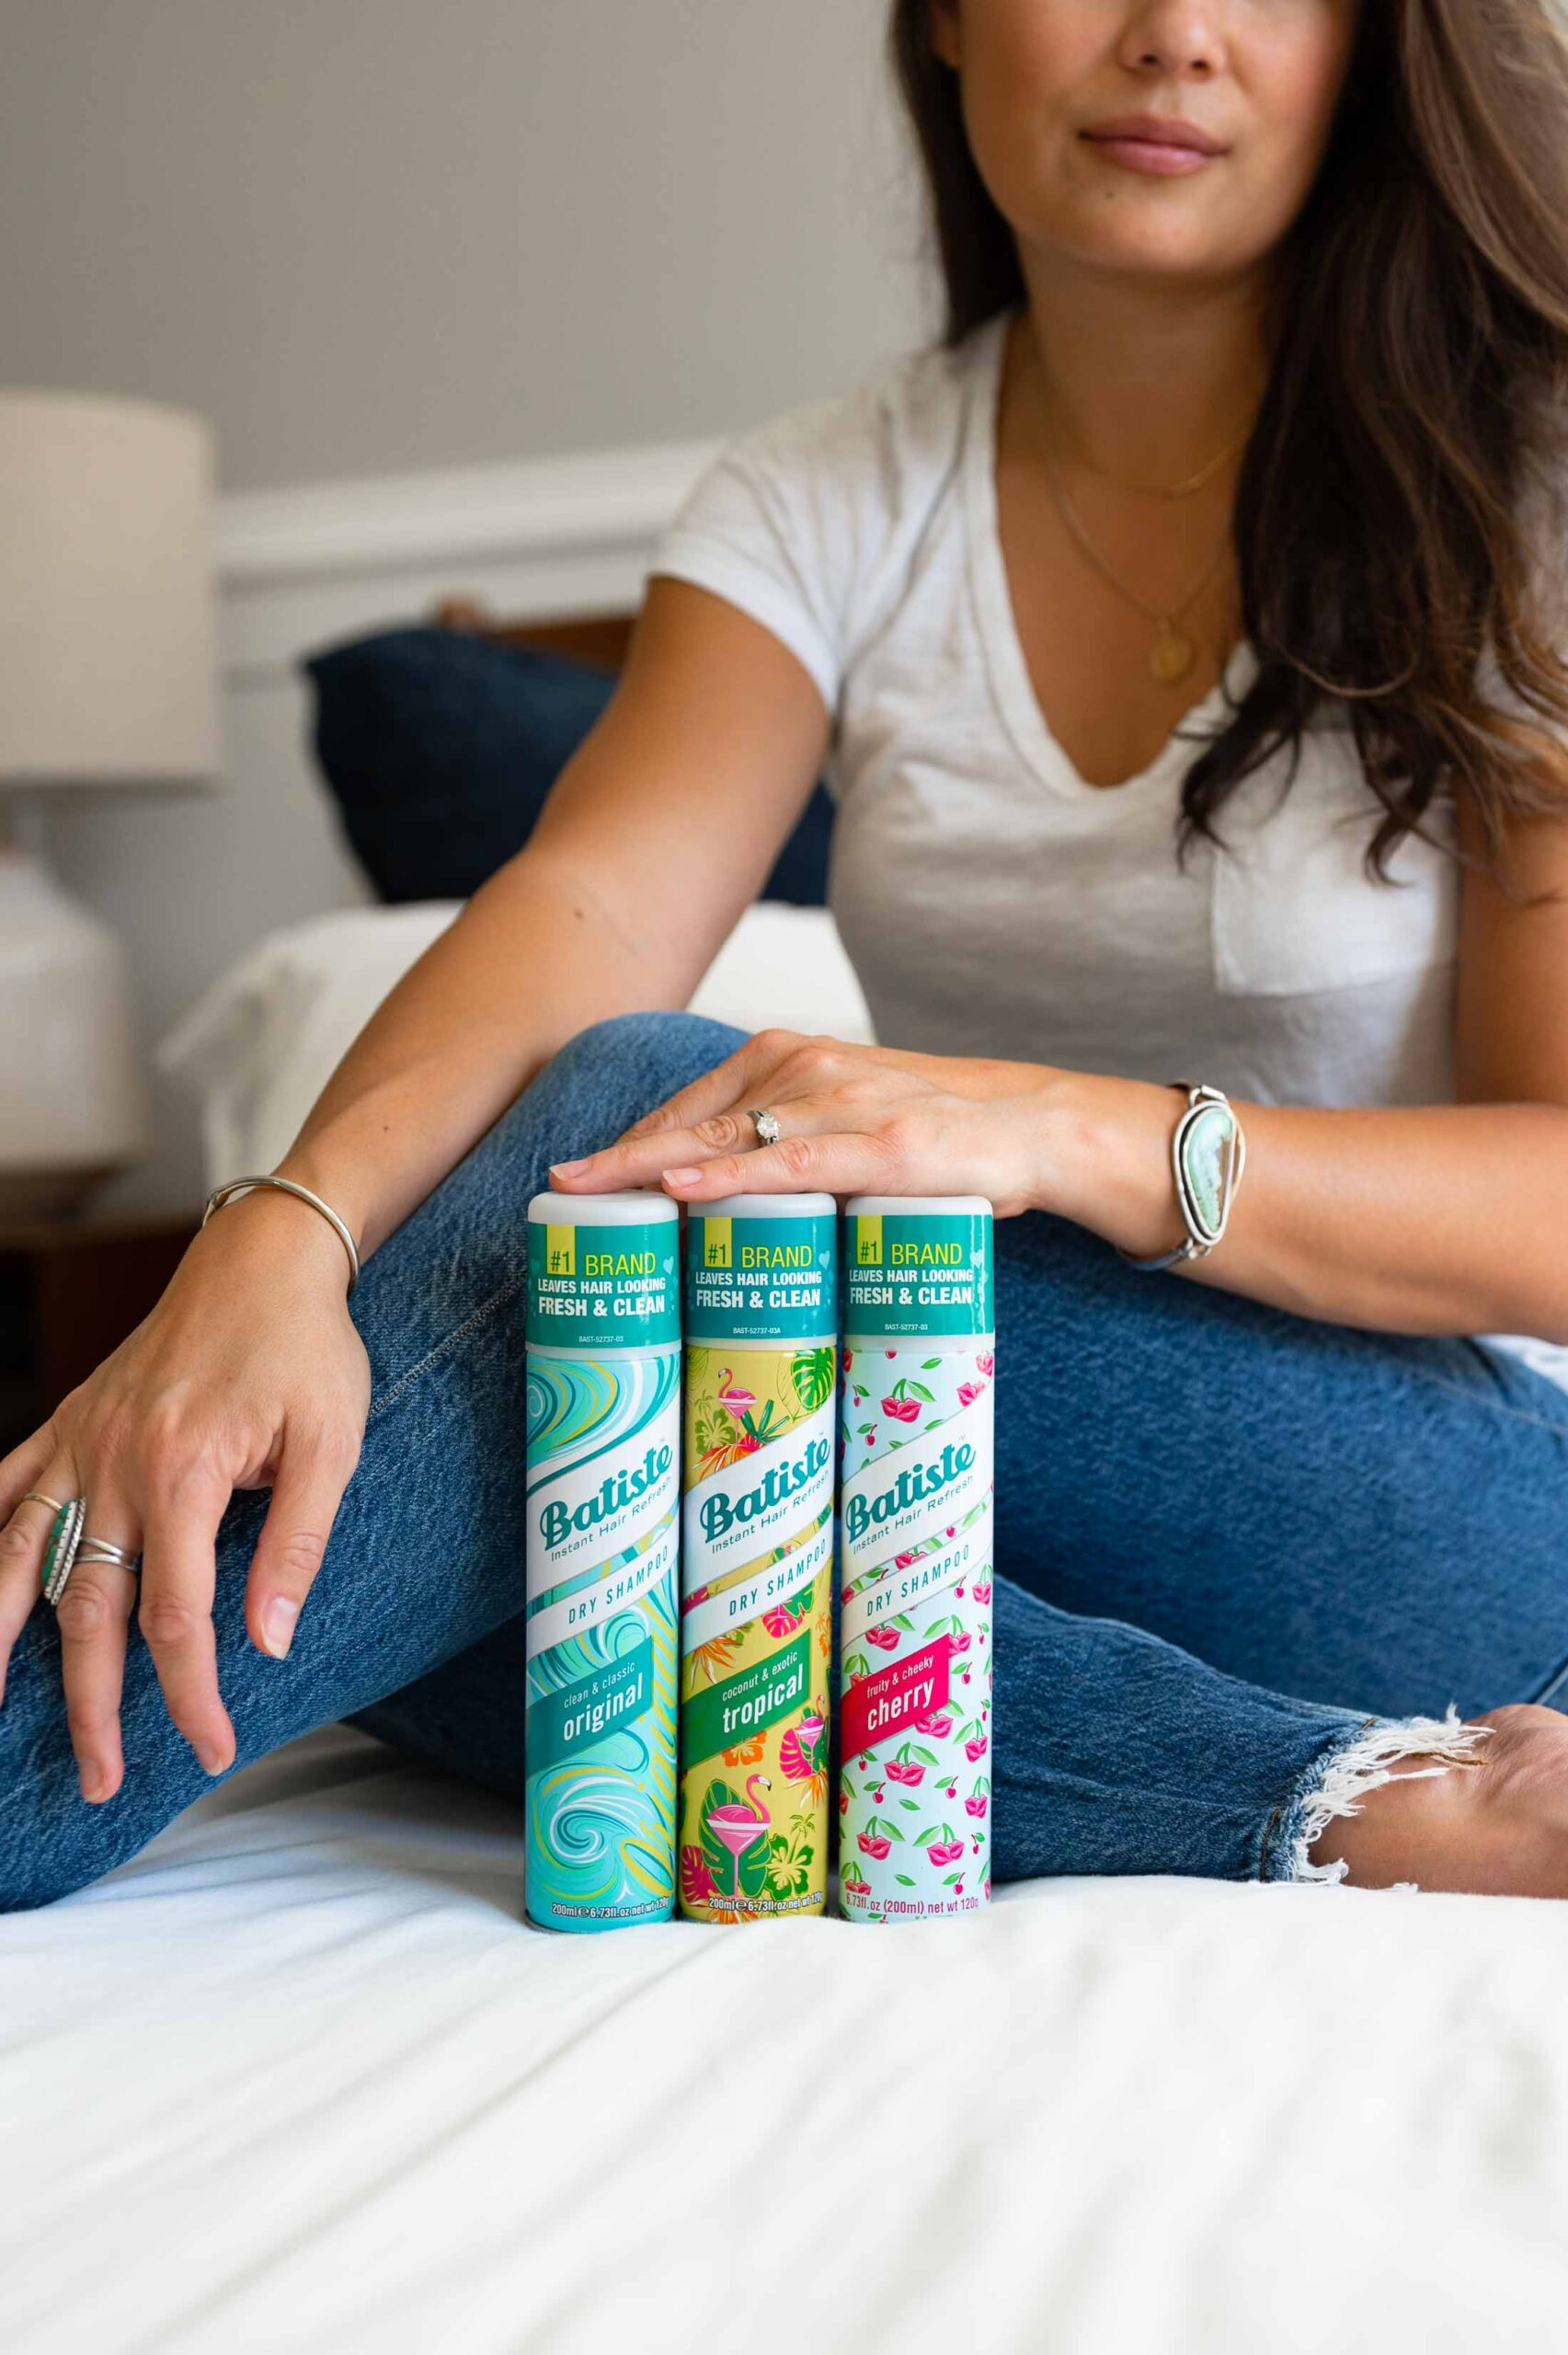 We're reviewing Batiste Dry Shampoo & Waterless Foam...With my weekly hair-washing routine, my locks are fuller, shinier & easy-to-care for.